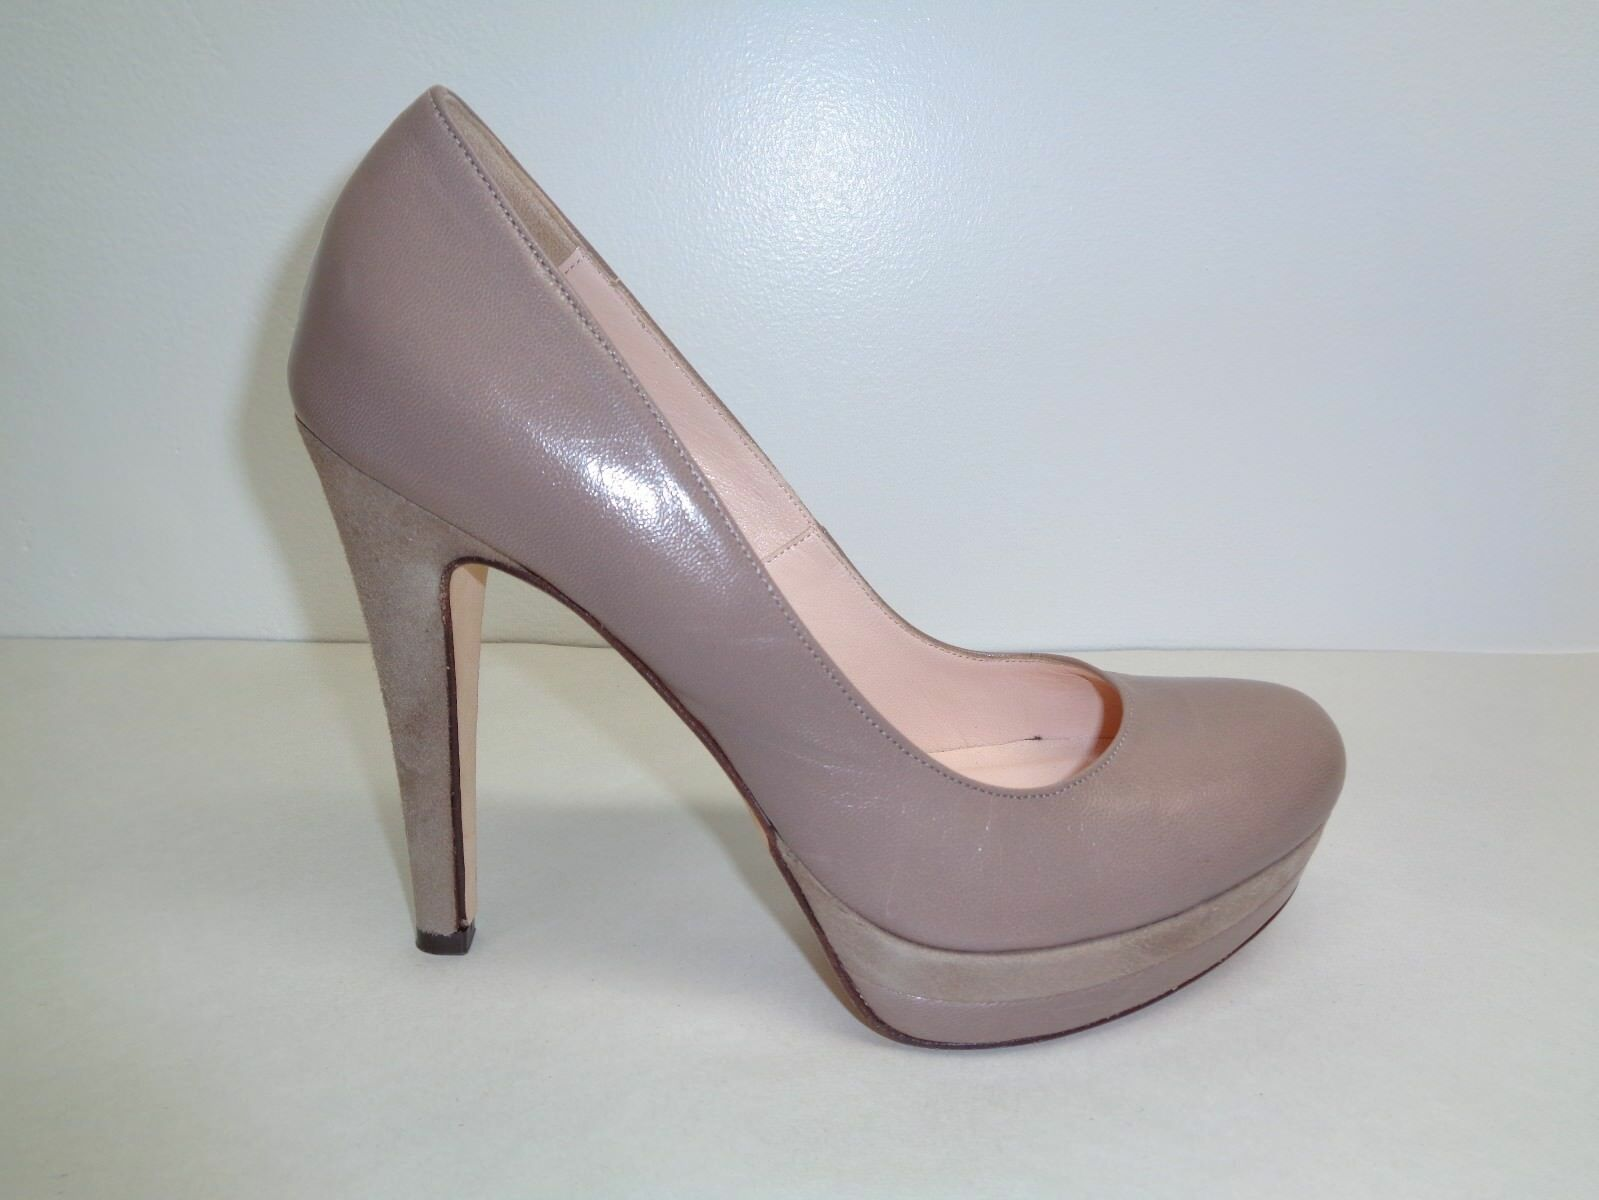 Charles David Size 9.5 M DONATI Taupe Leather New Womens Heels Pumps shoes